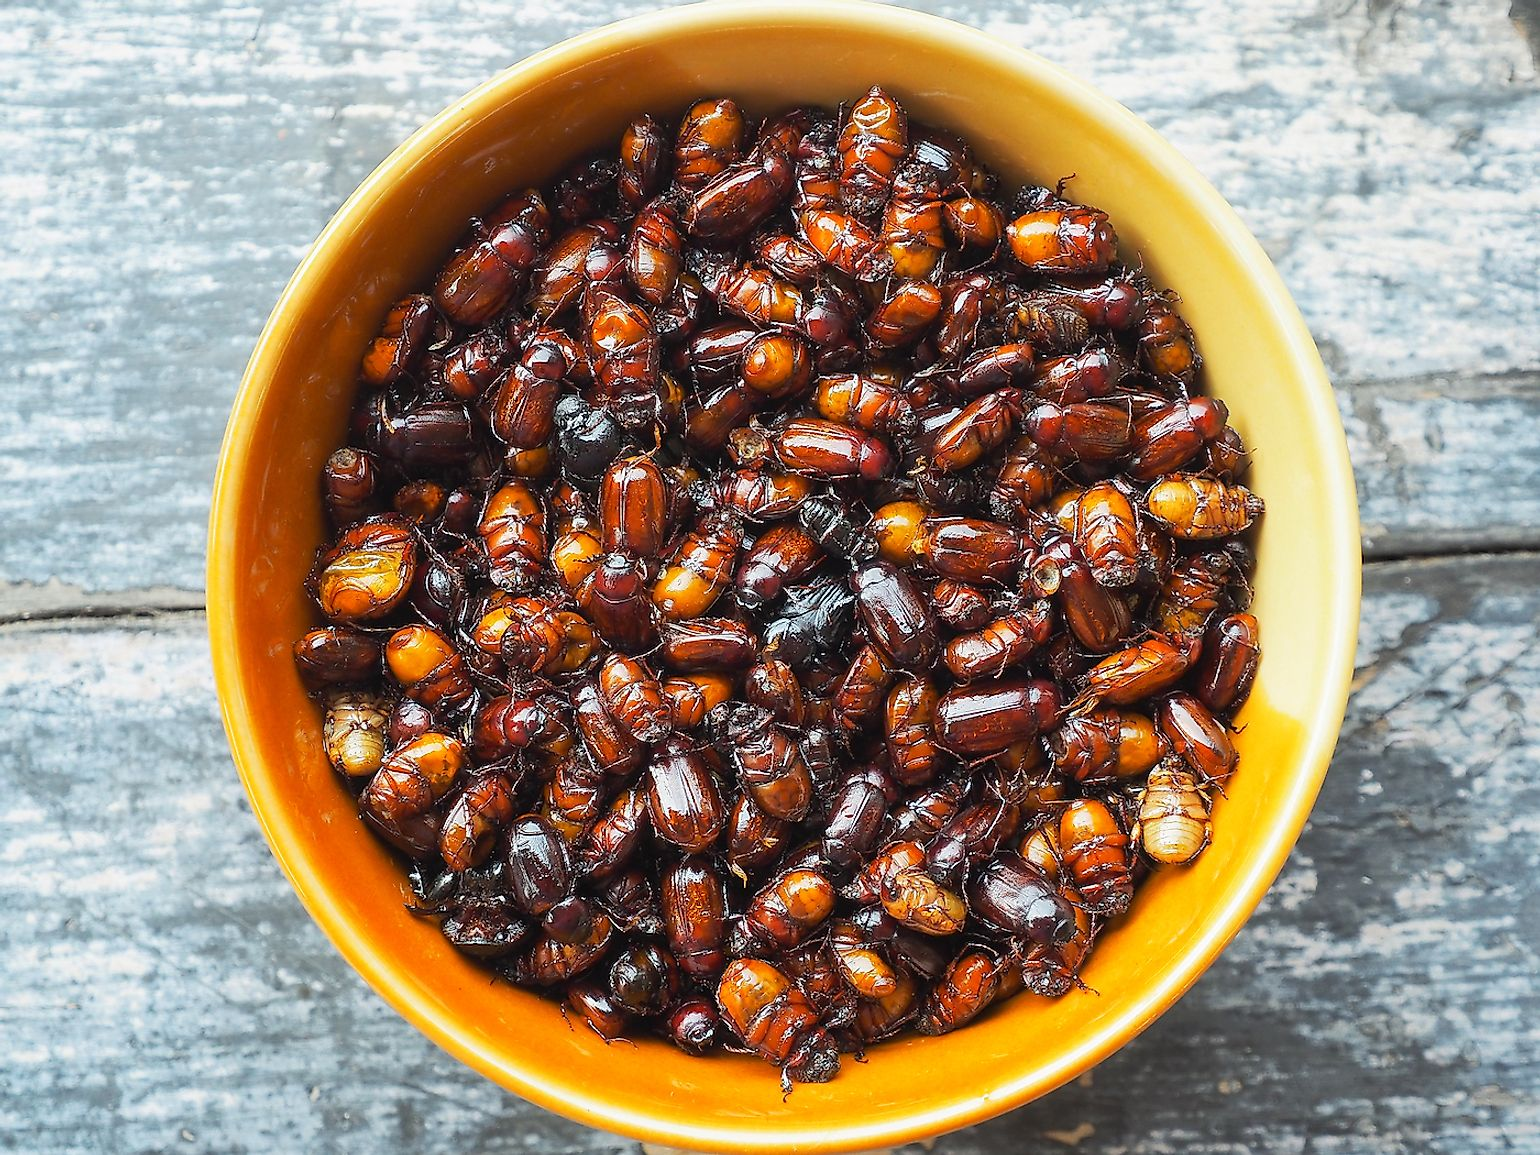 A bowl of deep fried and crispy Ruby roast beetle. Image credit: Eakarat Jugmai/Shutterstock.com